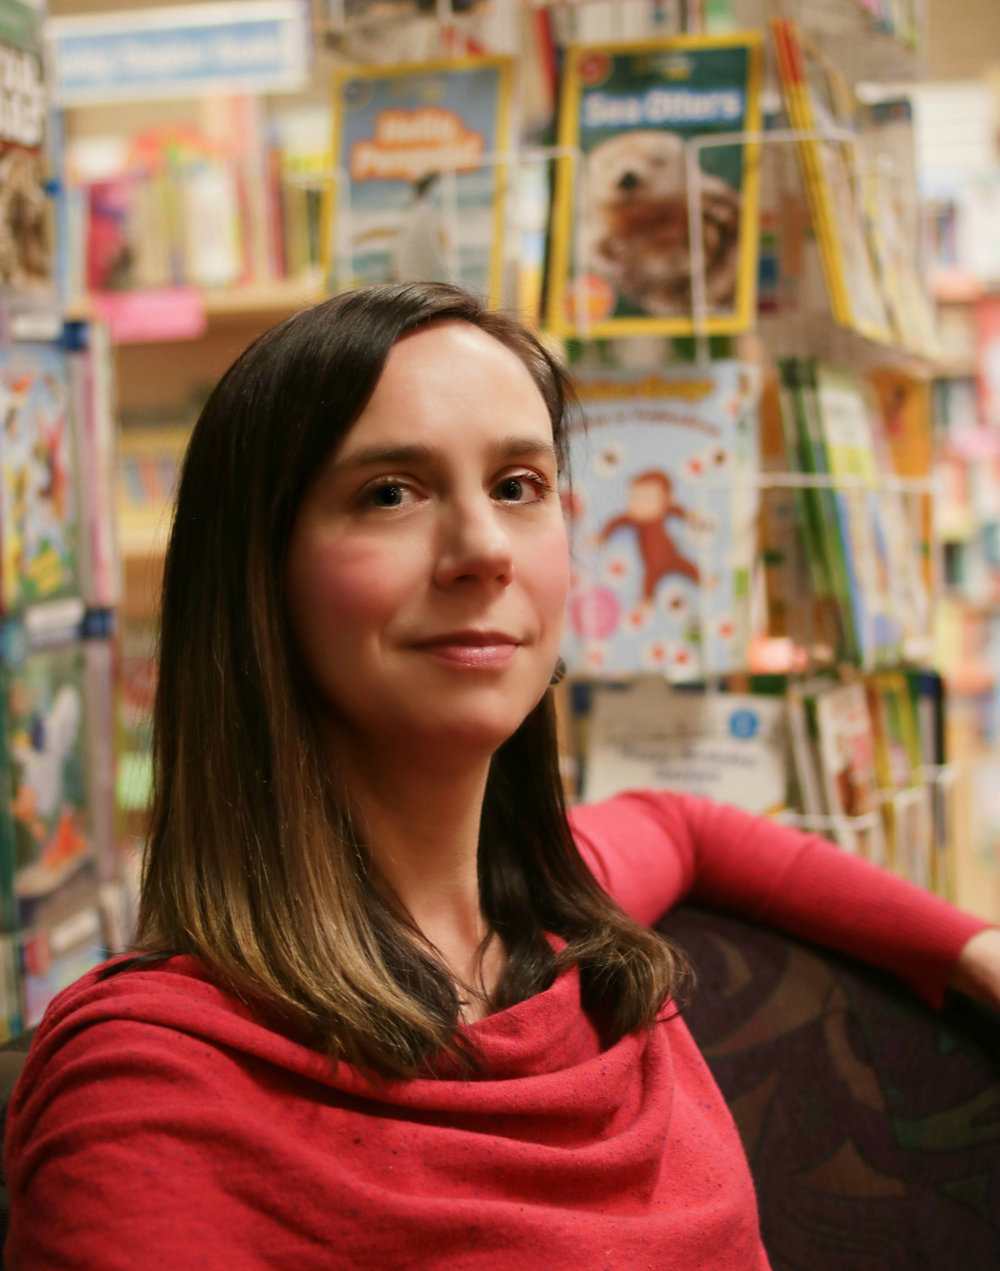 About - Patty lives in Boise, Idaho with her husband, a zany awesome toddler, a dog named Pippa, and a dog named Spencer. She grew up in the Twin Cities and is a Minnesotan at heart (you betcha!). She has a BS in Psychology from the University of St Thomas and a PhD in Neuroscience from the University of Minnesota. She currently works in higher education. Her first book, Catalina and the King's Wall, will release May 5th, 2018 from Eifrig Publishing. At all hours of the day (and night) she can be found standing at her desk, helping her university run smoothly and working on her next children's book.